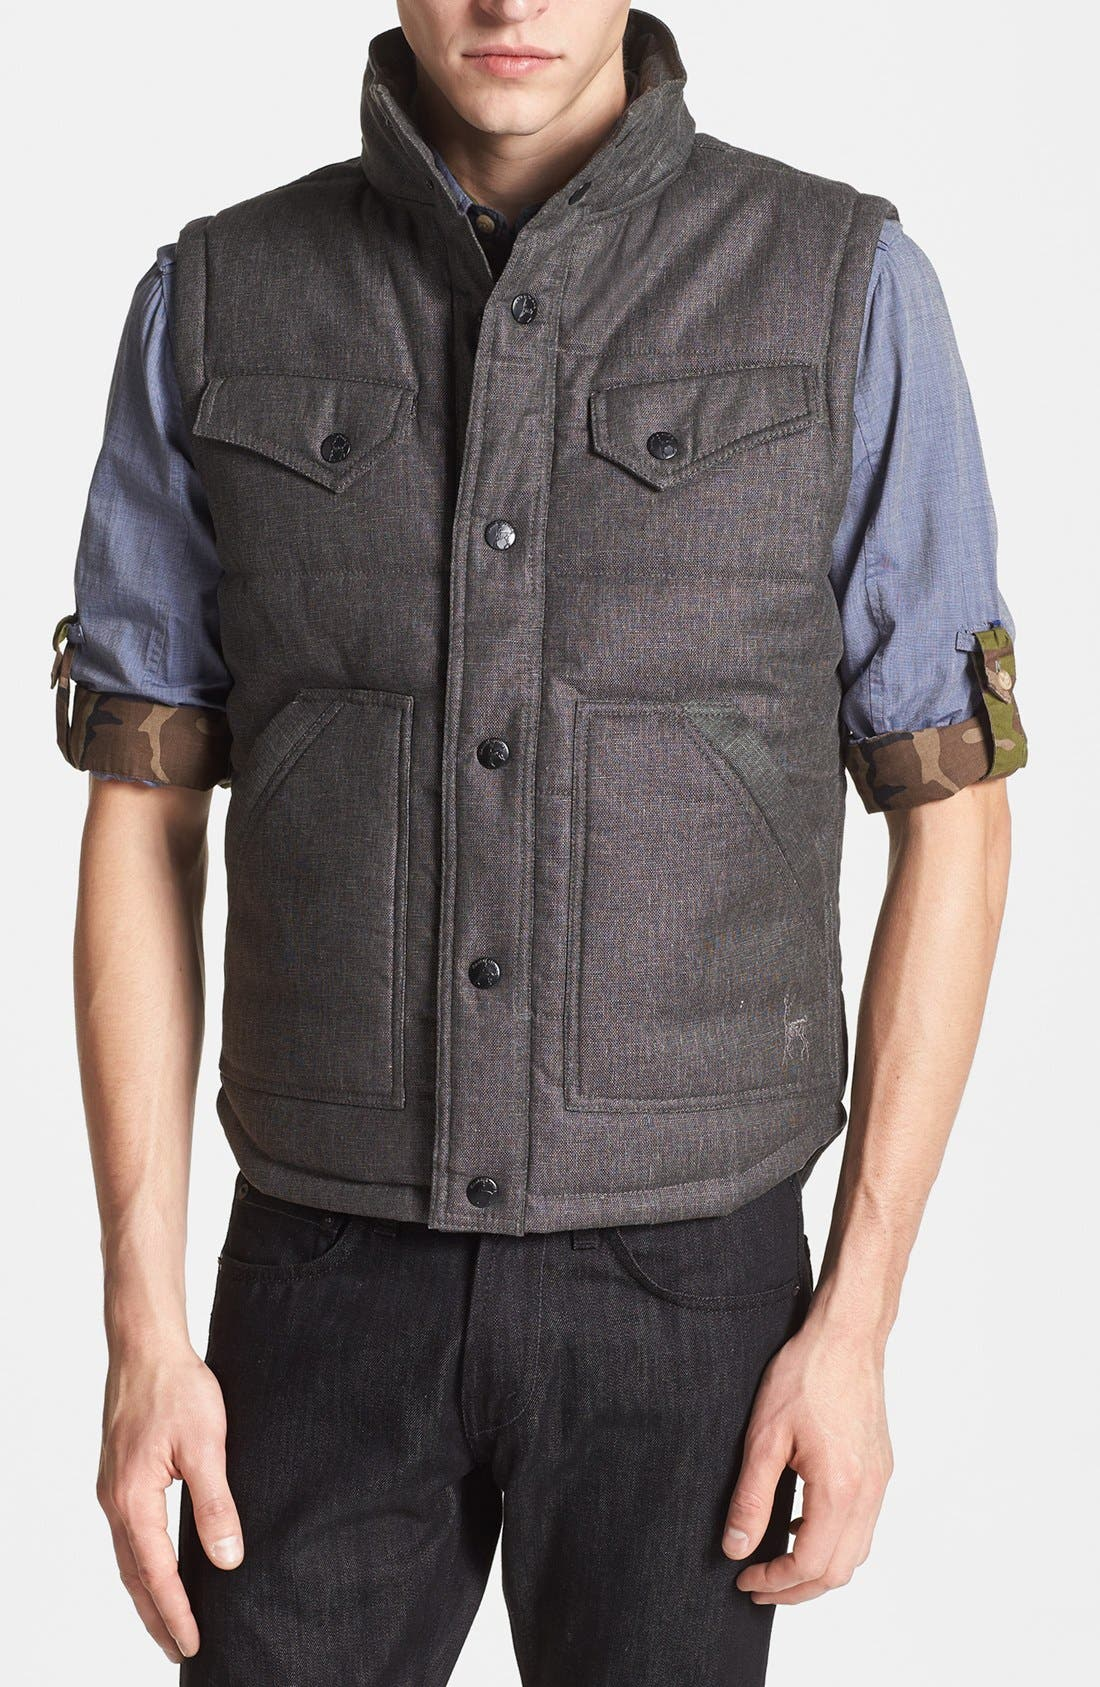 Alternate Image 1 Selected - Kane & Unke Quilted Cotton Vest